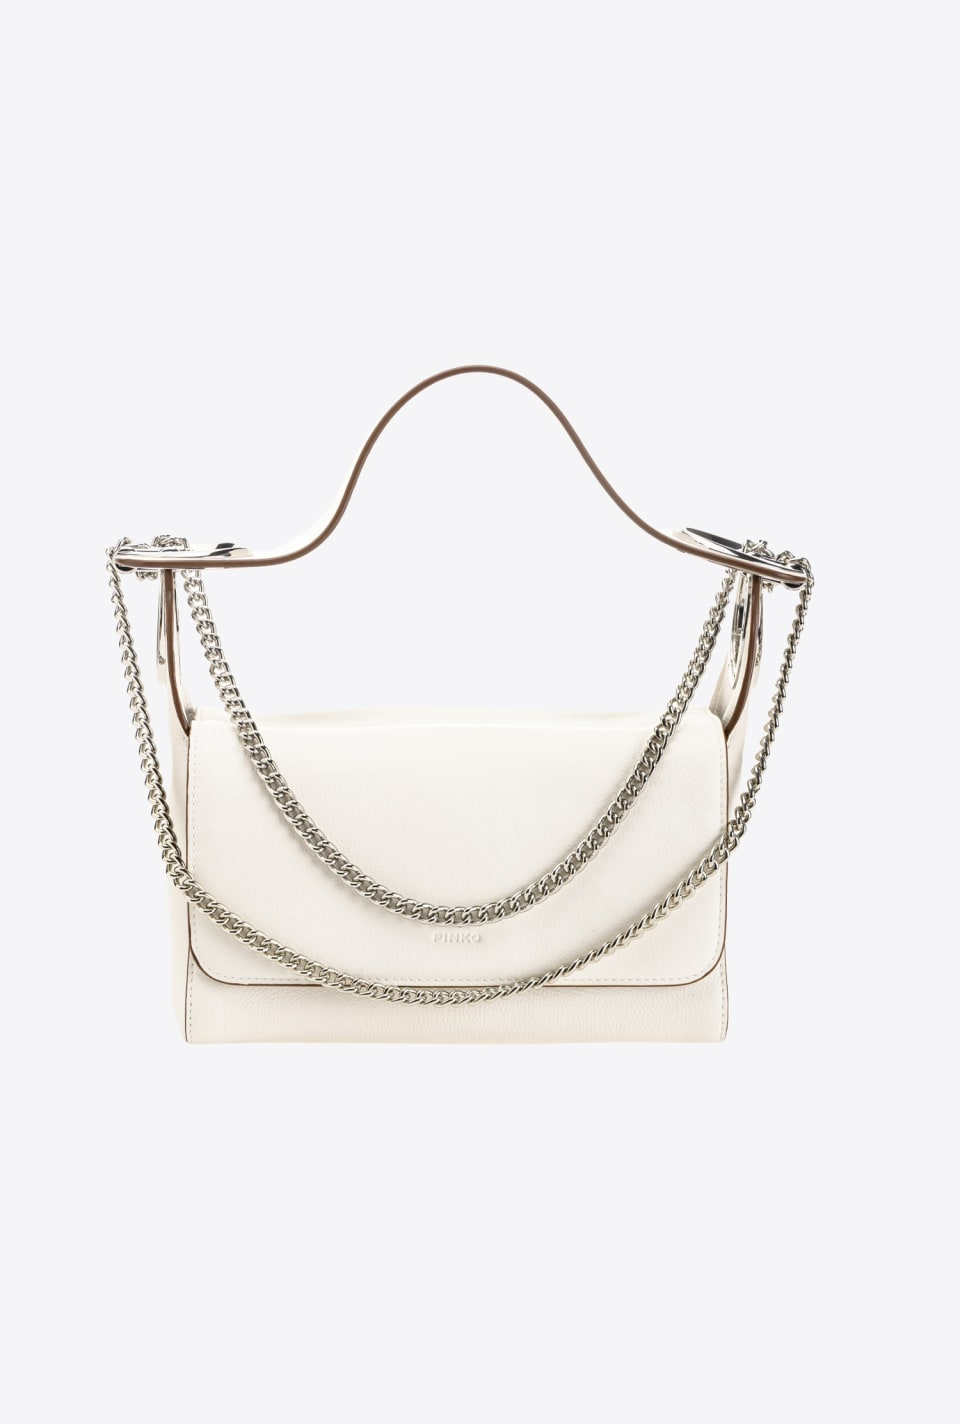 Shoulder Bag Infinity Bubbles - Pinko